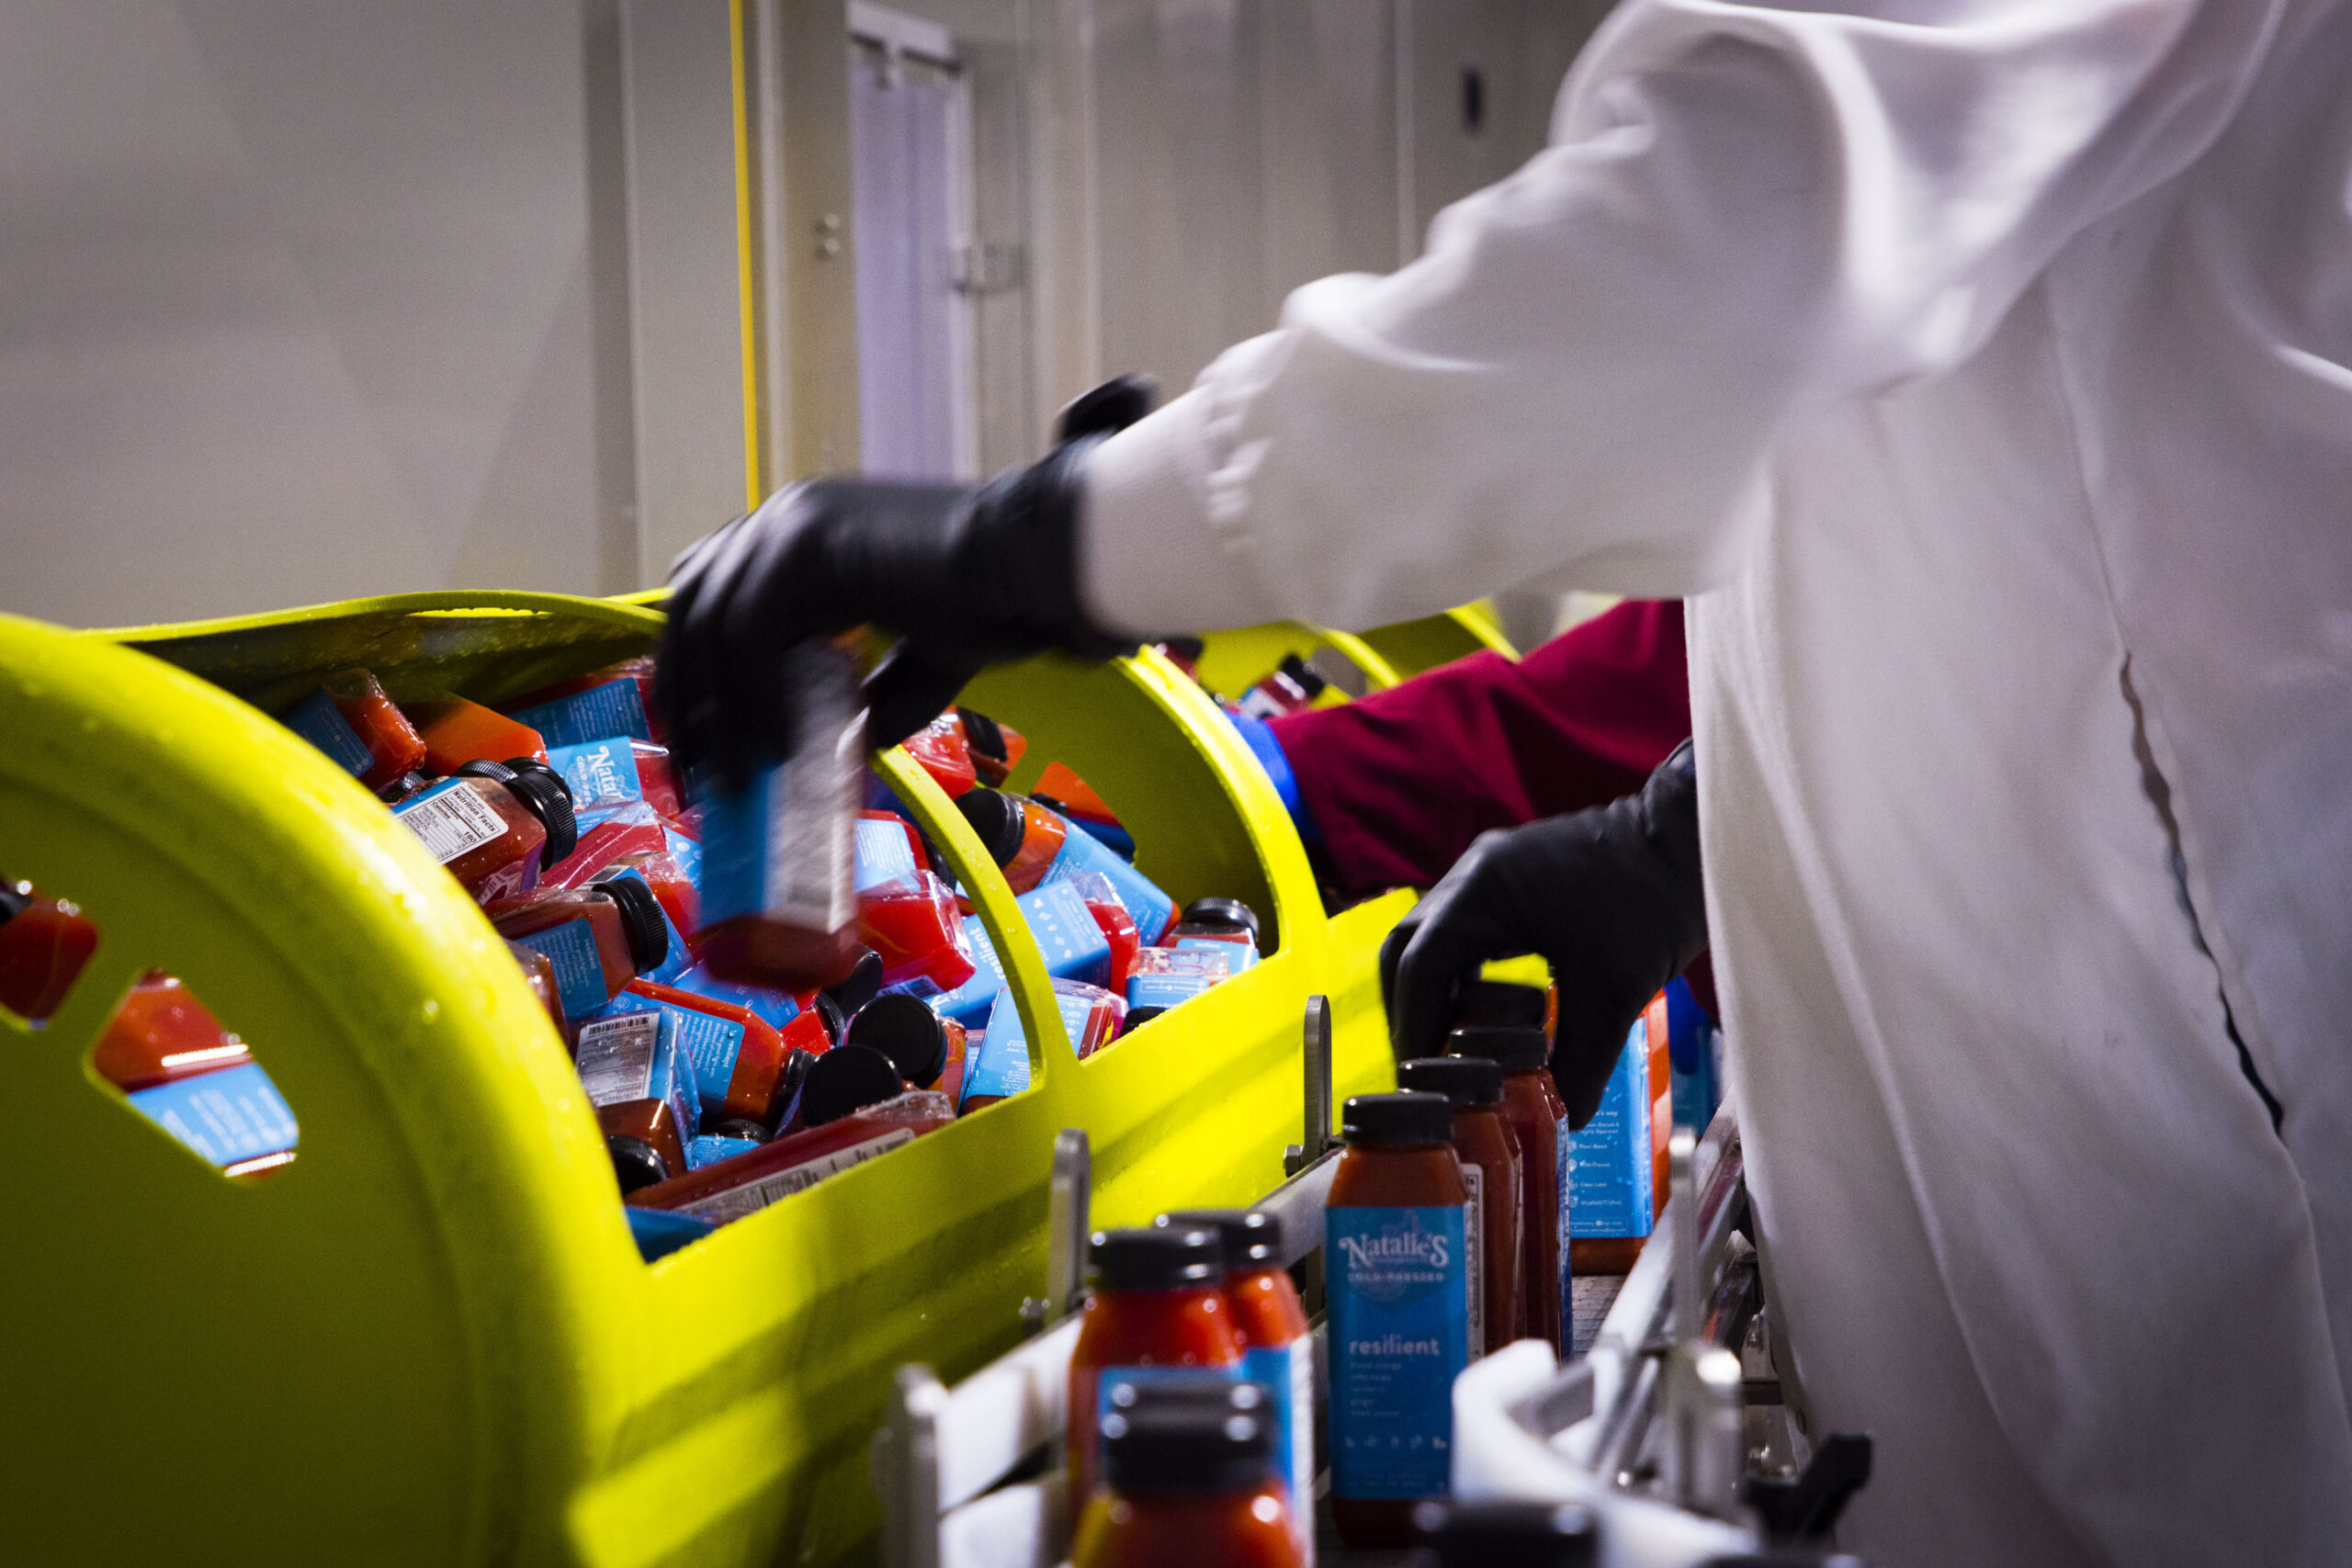 image of nutritious drinks being placed on assembly line